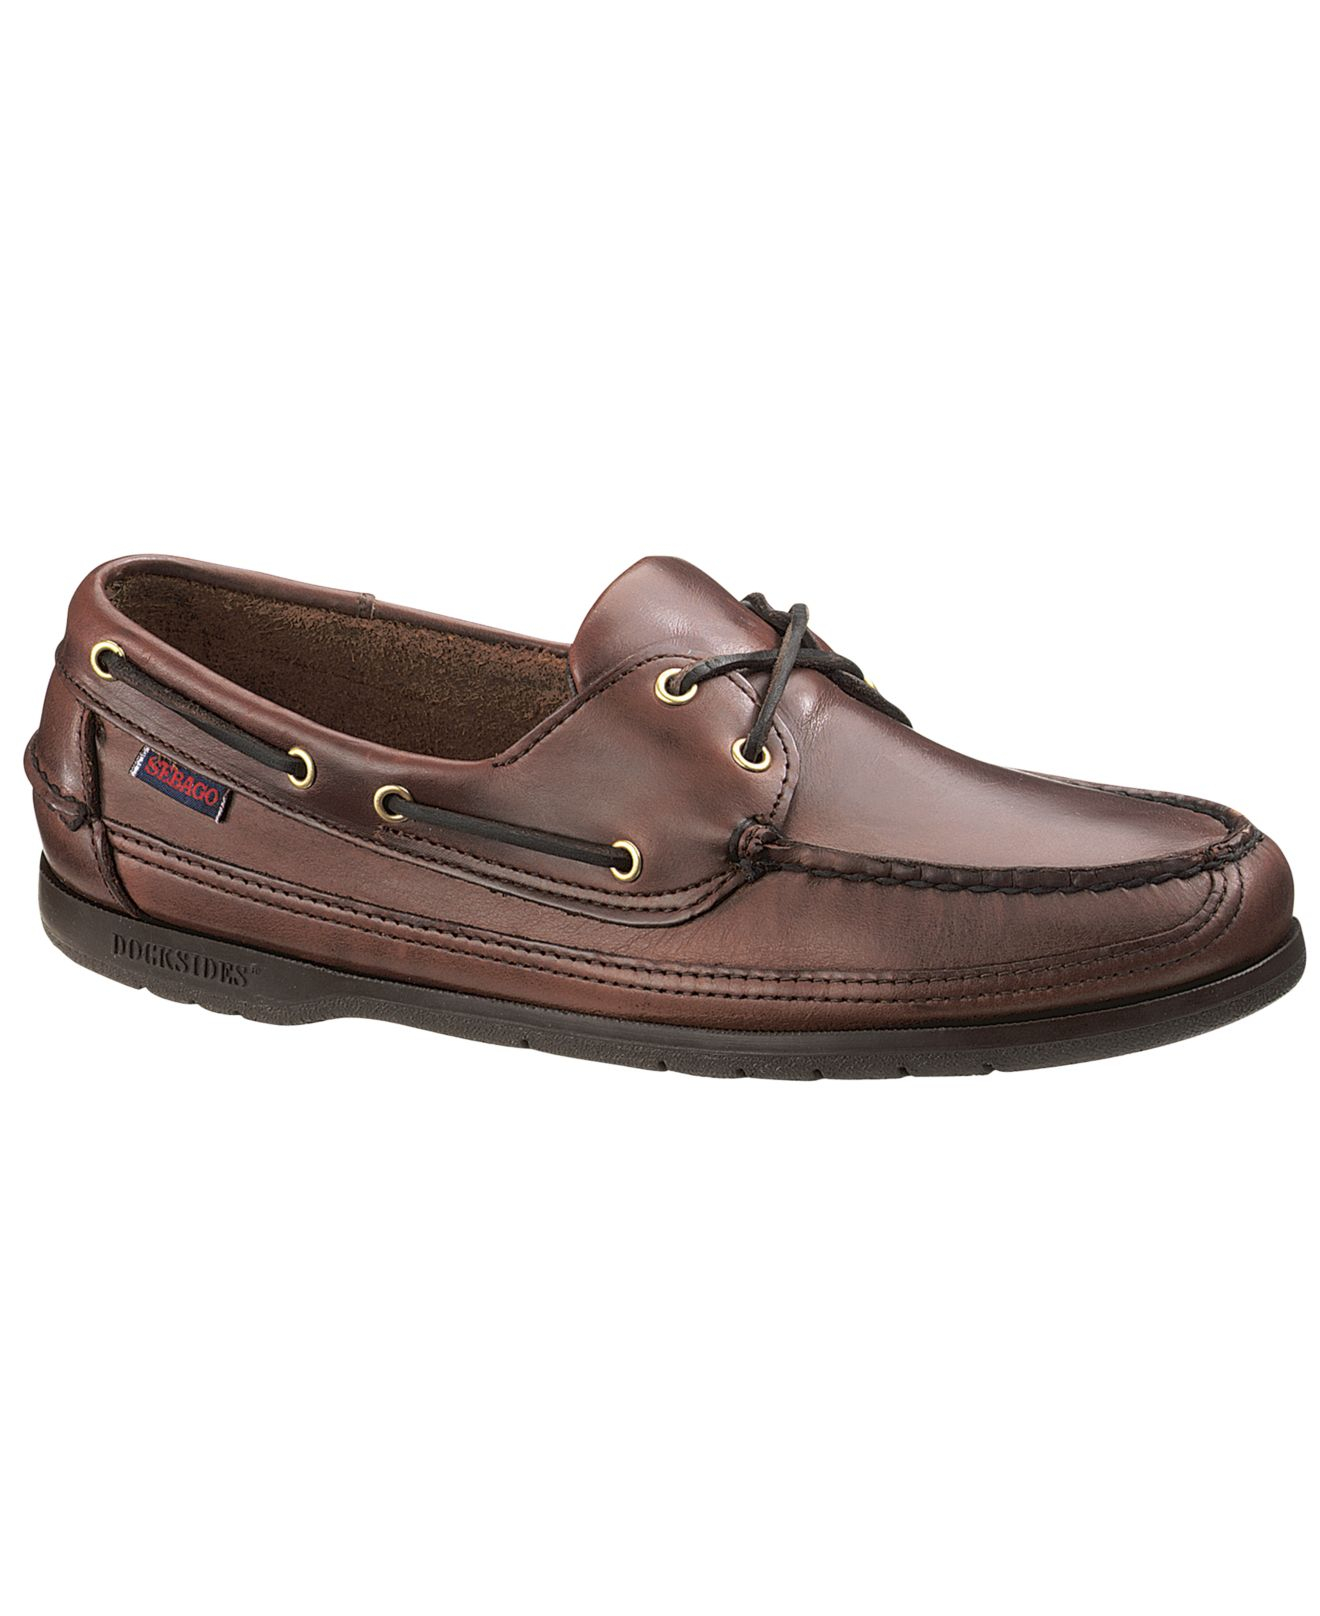 Bass Slip On Boat Shoes